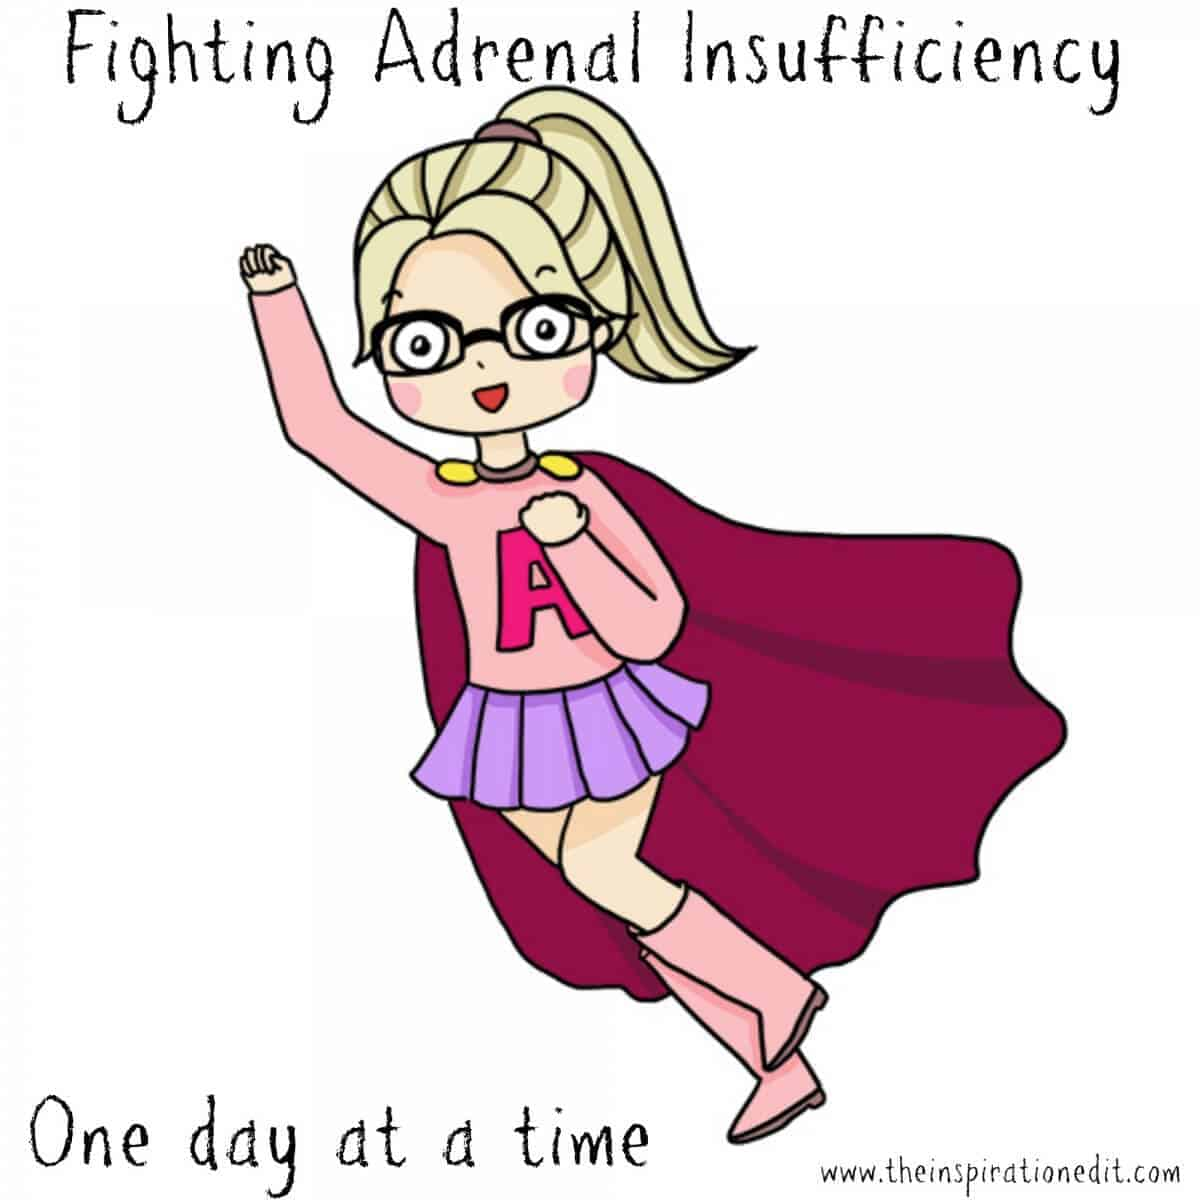 adrenal pump for adrenal insufficiency